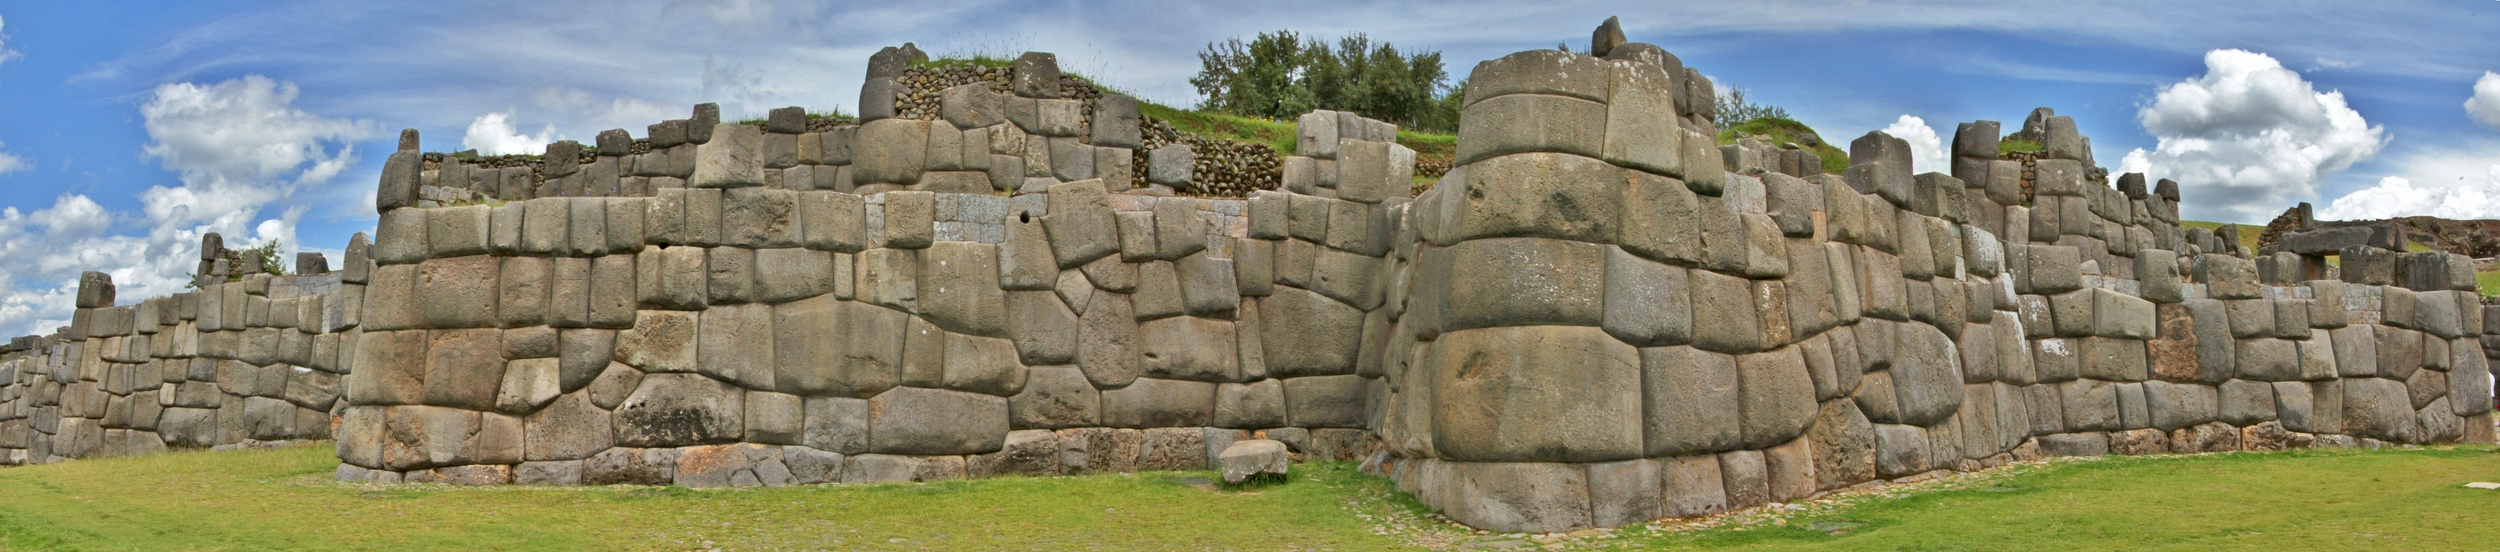 The walls of Saksaywaman.   Click for full-size image